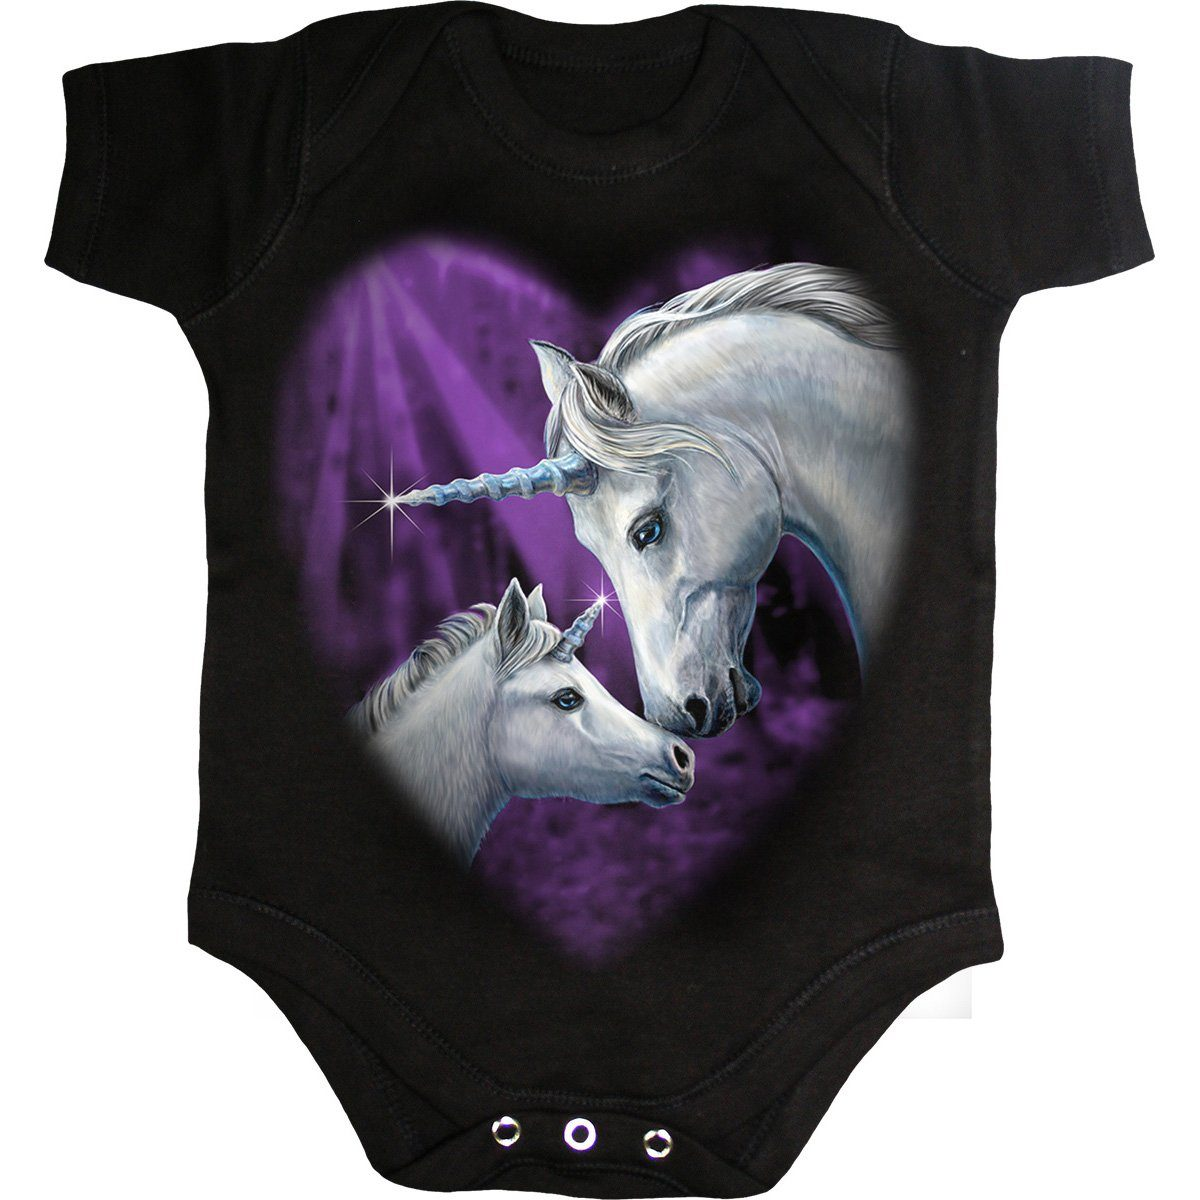 Magical Unicorn Baby Black Onesie